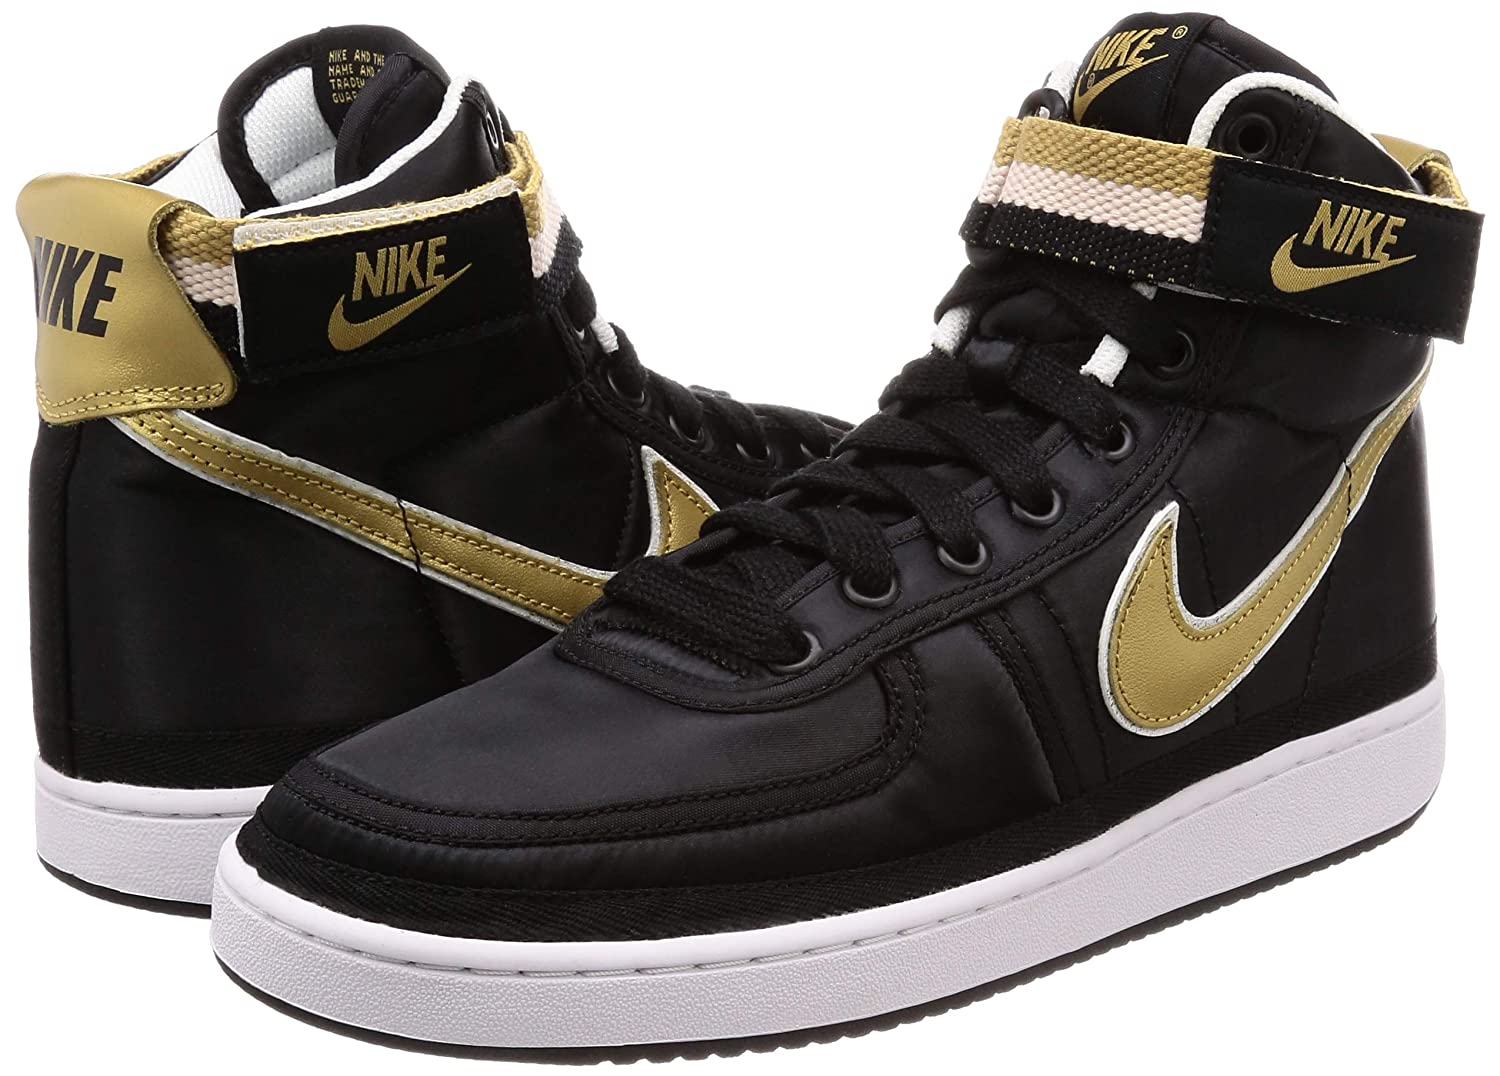 new product 582bd e1af4 Amazon.com   Nike Men s Vandal High Supreme Basketball Shoe   Fashion  Sneakers